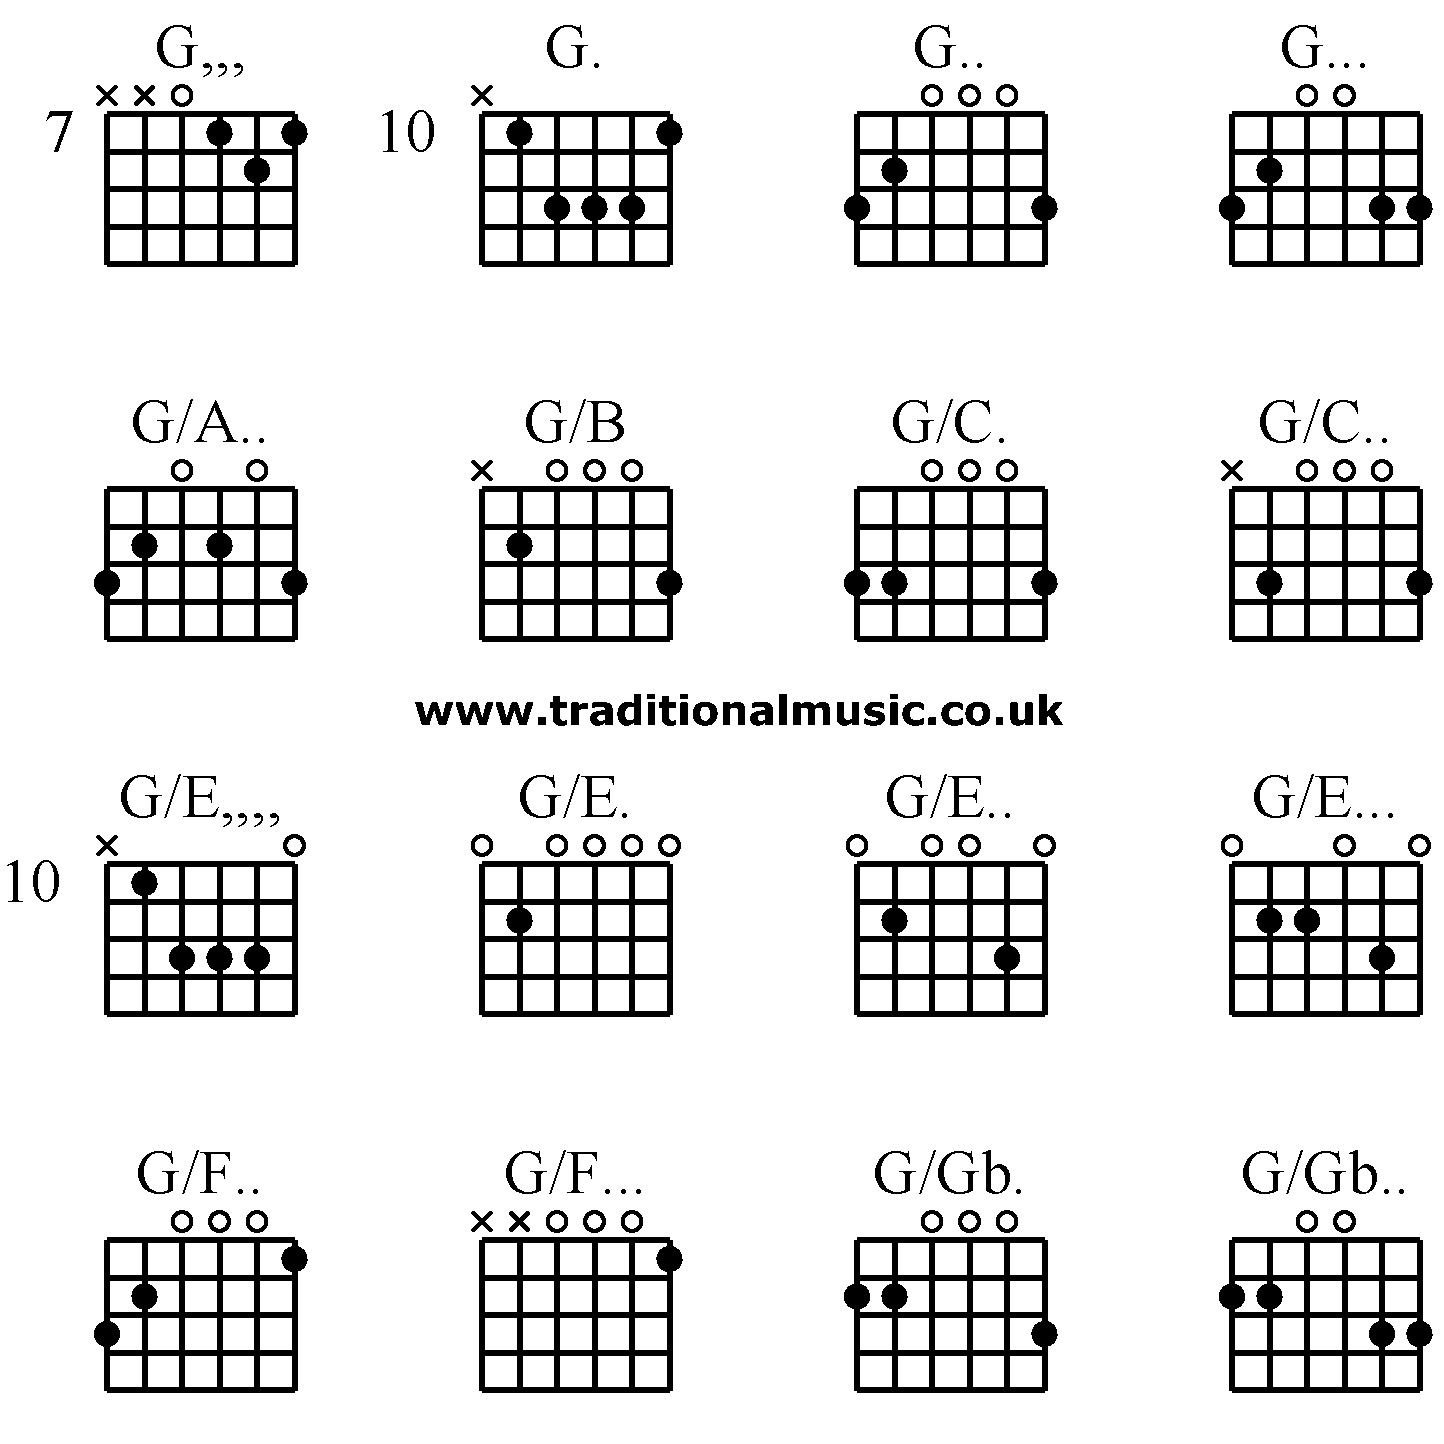 Guitar chords advanced g g g g ga gb gc gc ge ge advanced guitar chords g g g g g hexwebz Choice Image